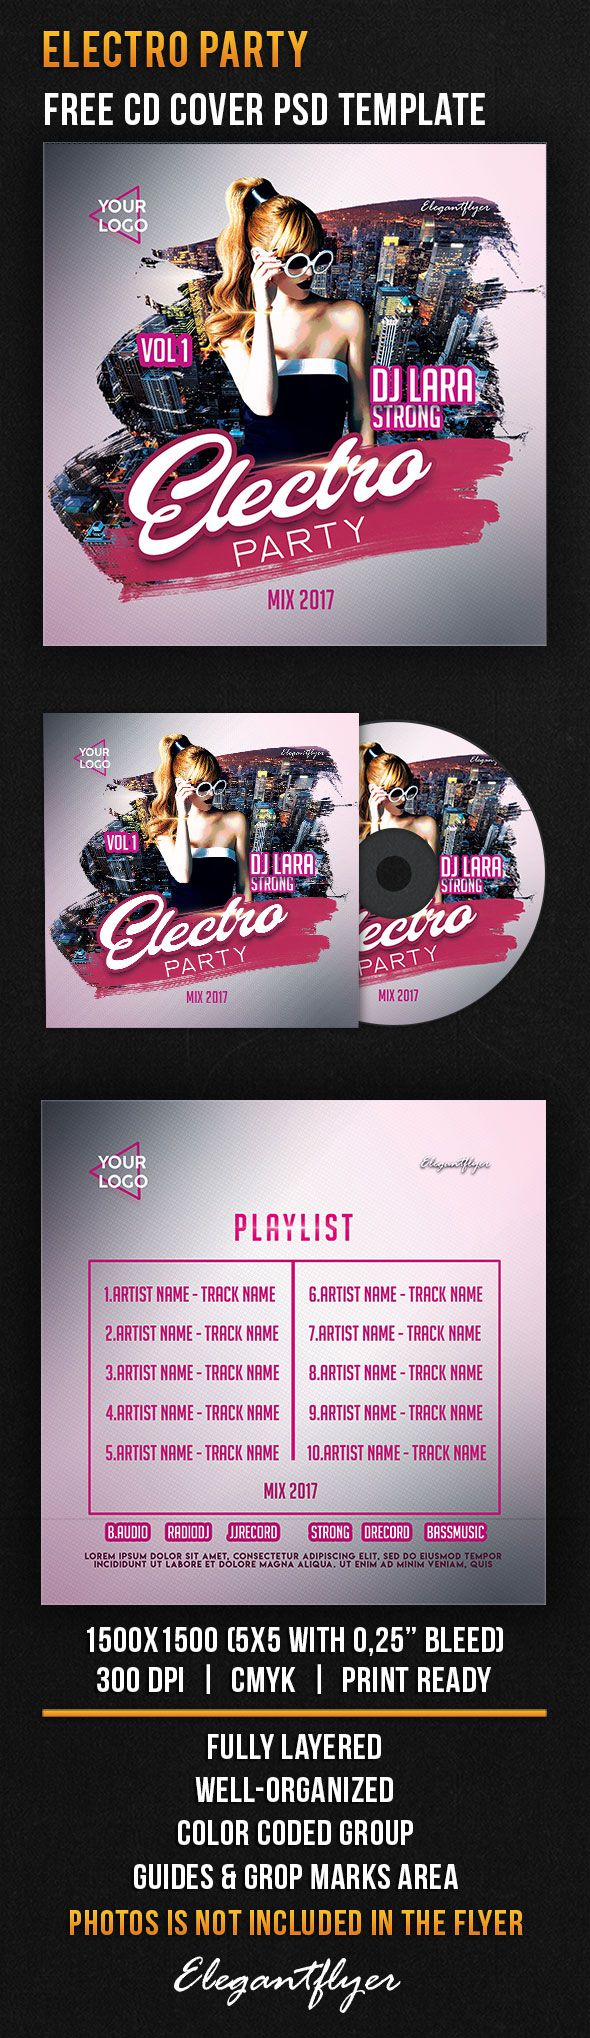 Electro Party Music Free CD Cover